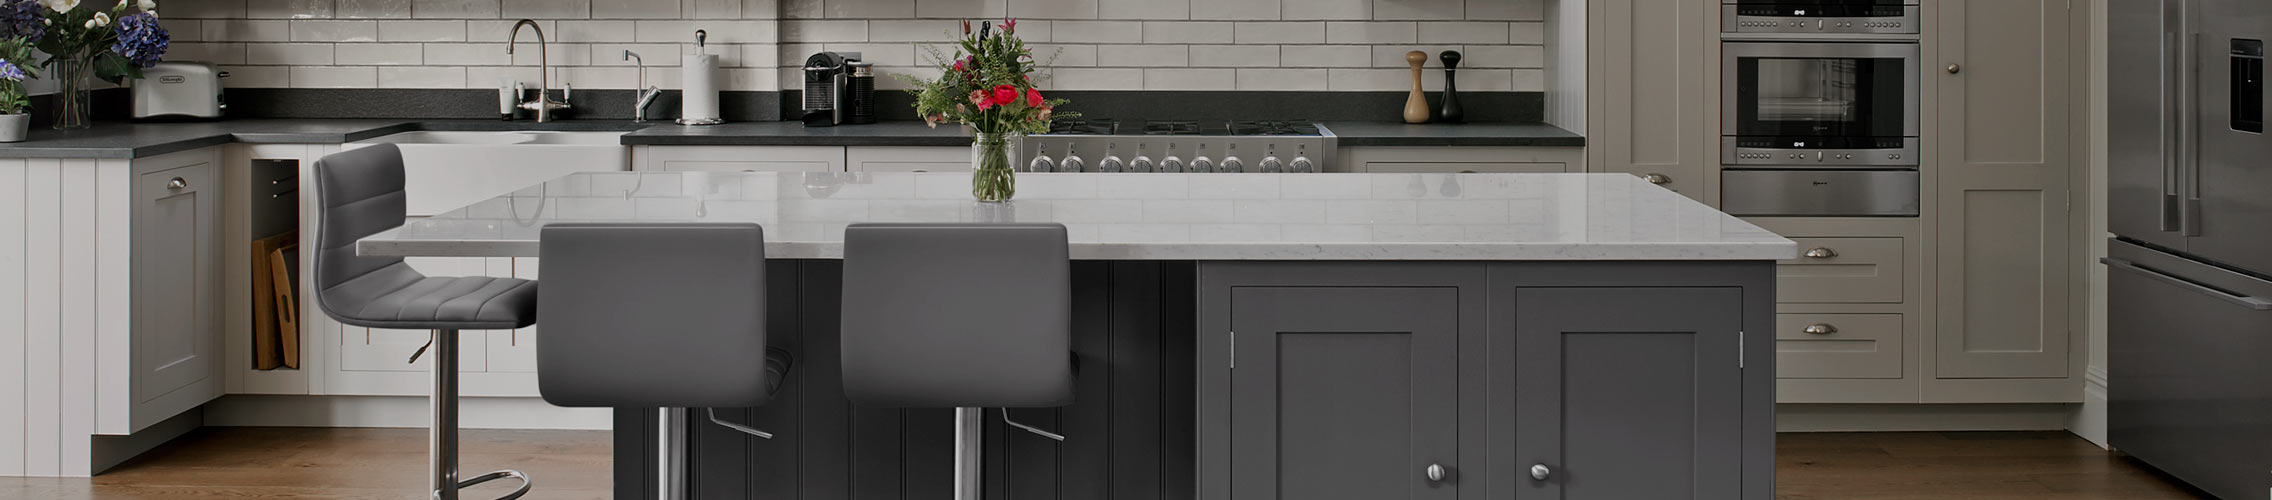 Brushed Steel Breakfast Bar Stools